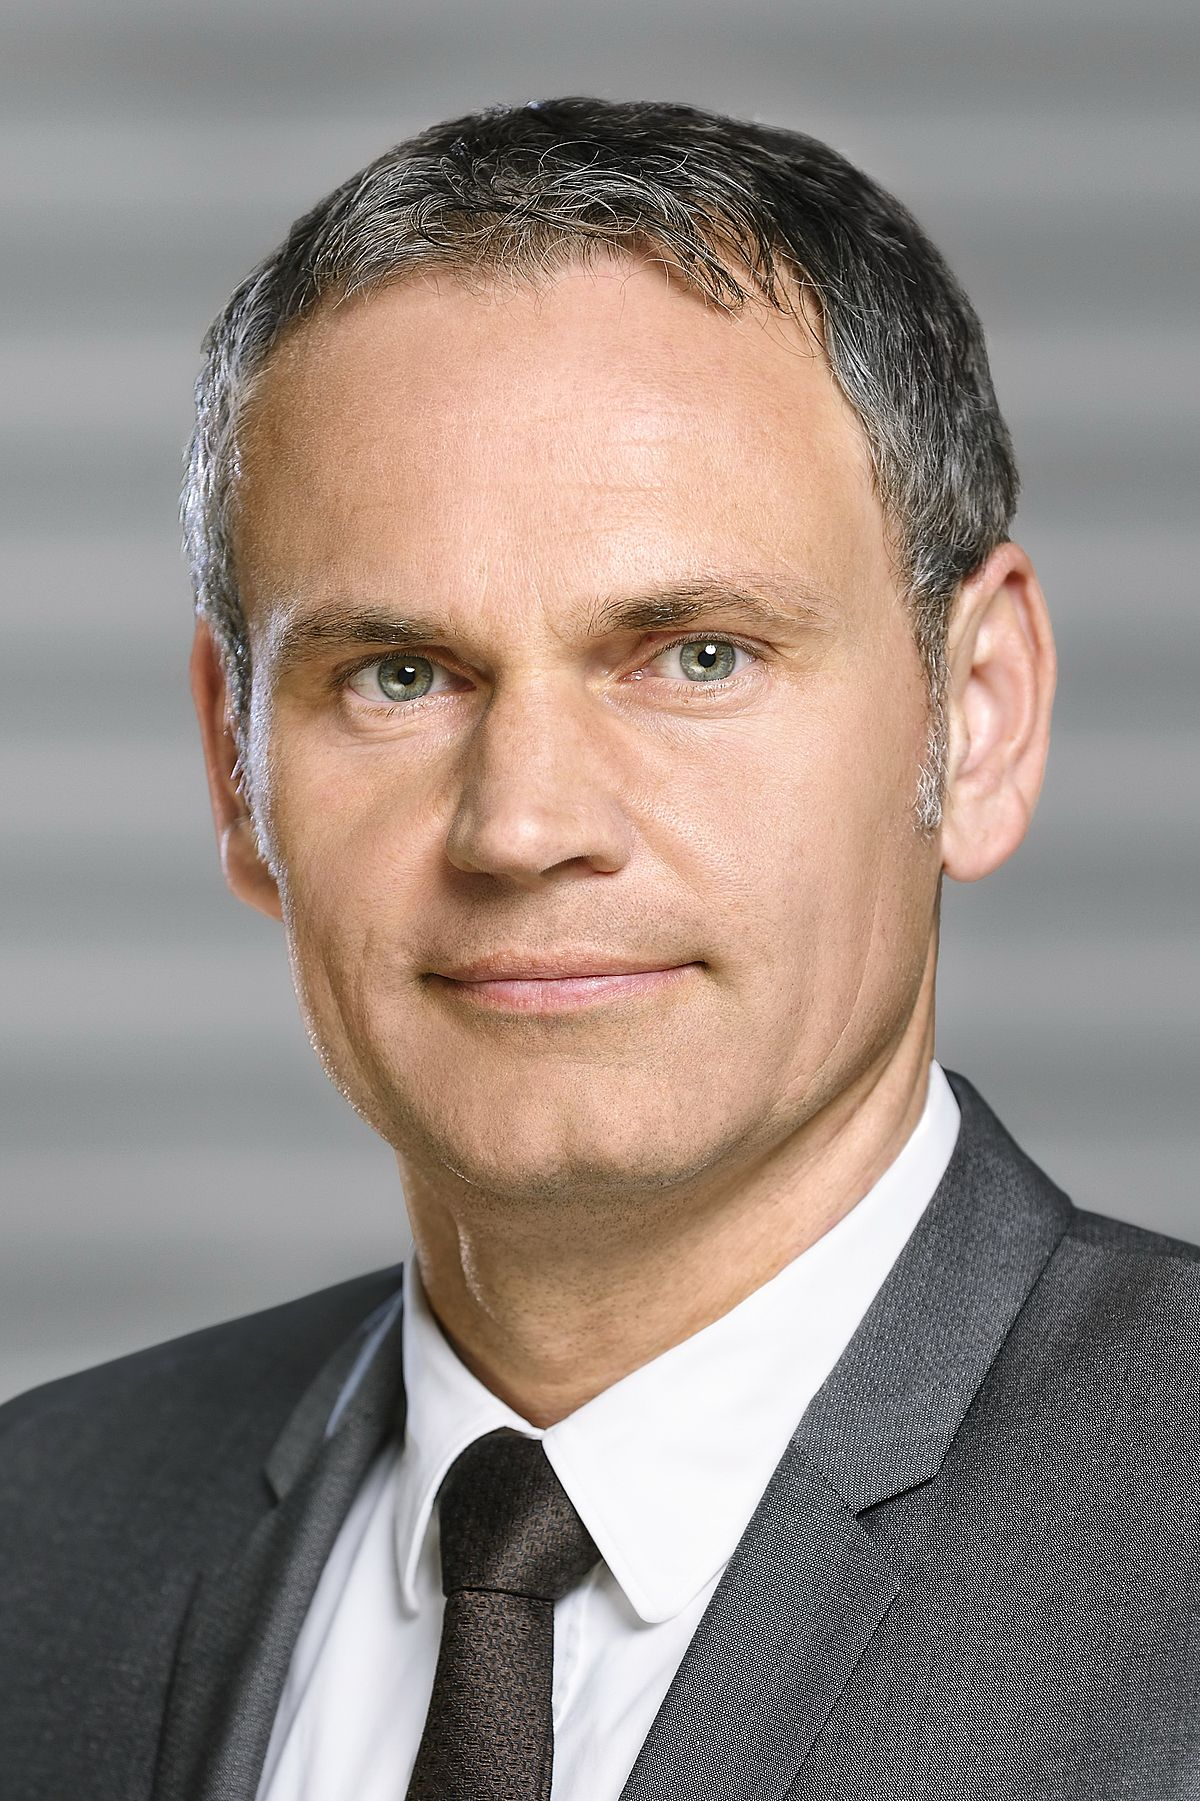 Audi Ceo Rupert Stadler Is Off The Hook In Volkswagen Emissions Scandal besides Chinese Electric Hybrid Cars besides Bugatti Talks Hybrid Chiron Considers Adding Electric Performance also Px Dr Oliver Blume Ceo Porsche Ag also Tesla Range Supercharger. on volkswagen ceo